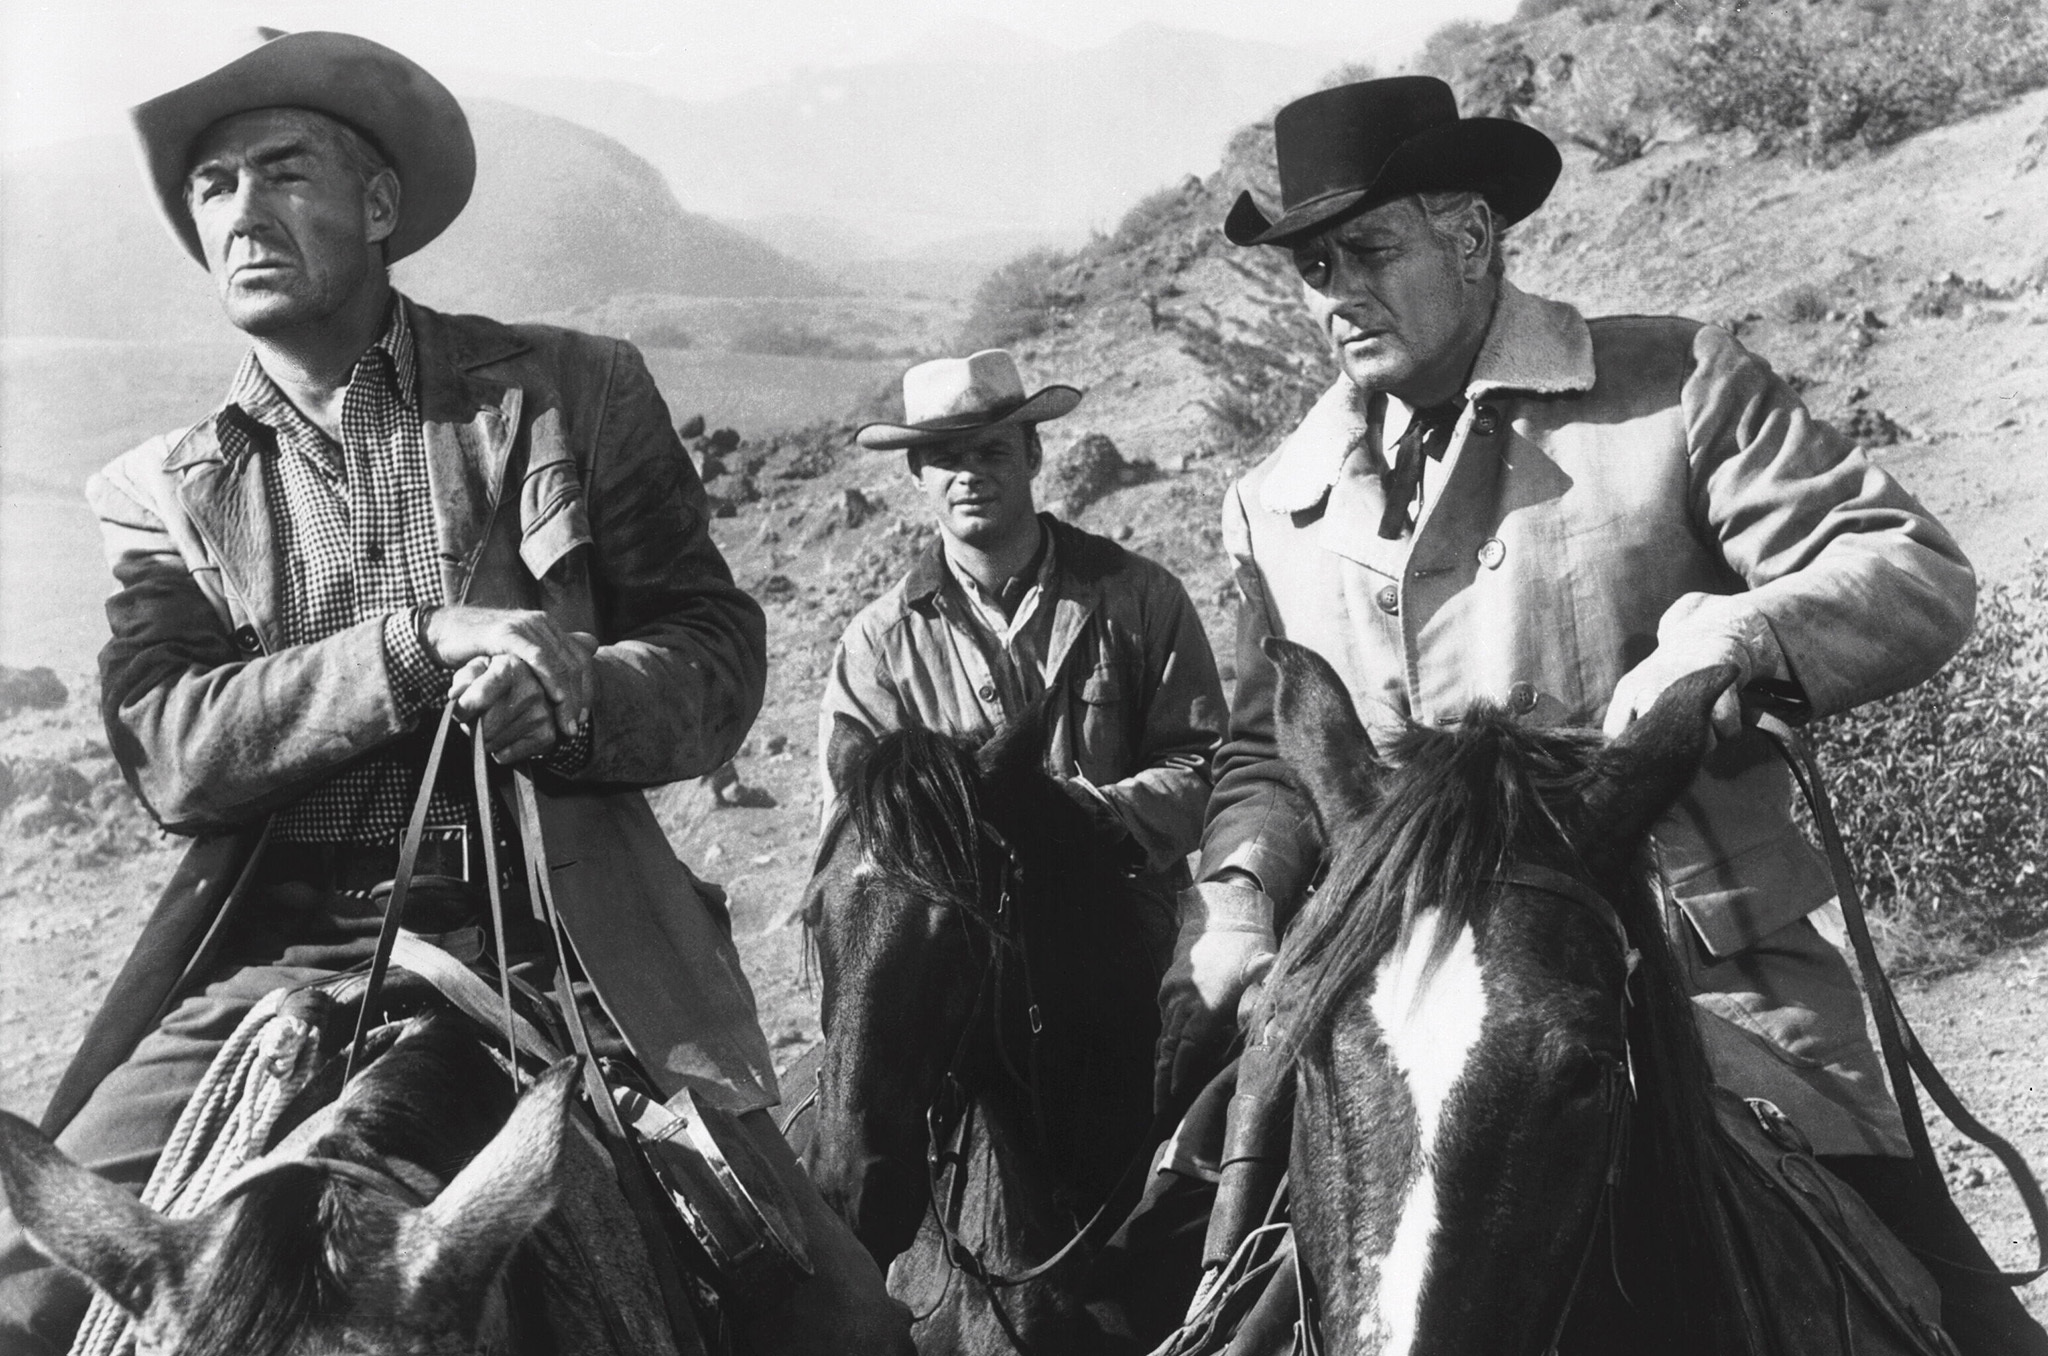 The 50 greatest westerns, best western movies, Ride the High Country